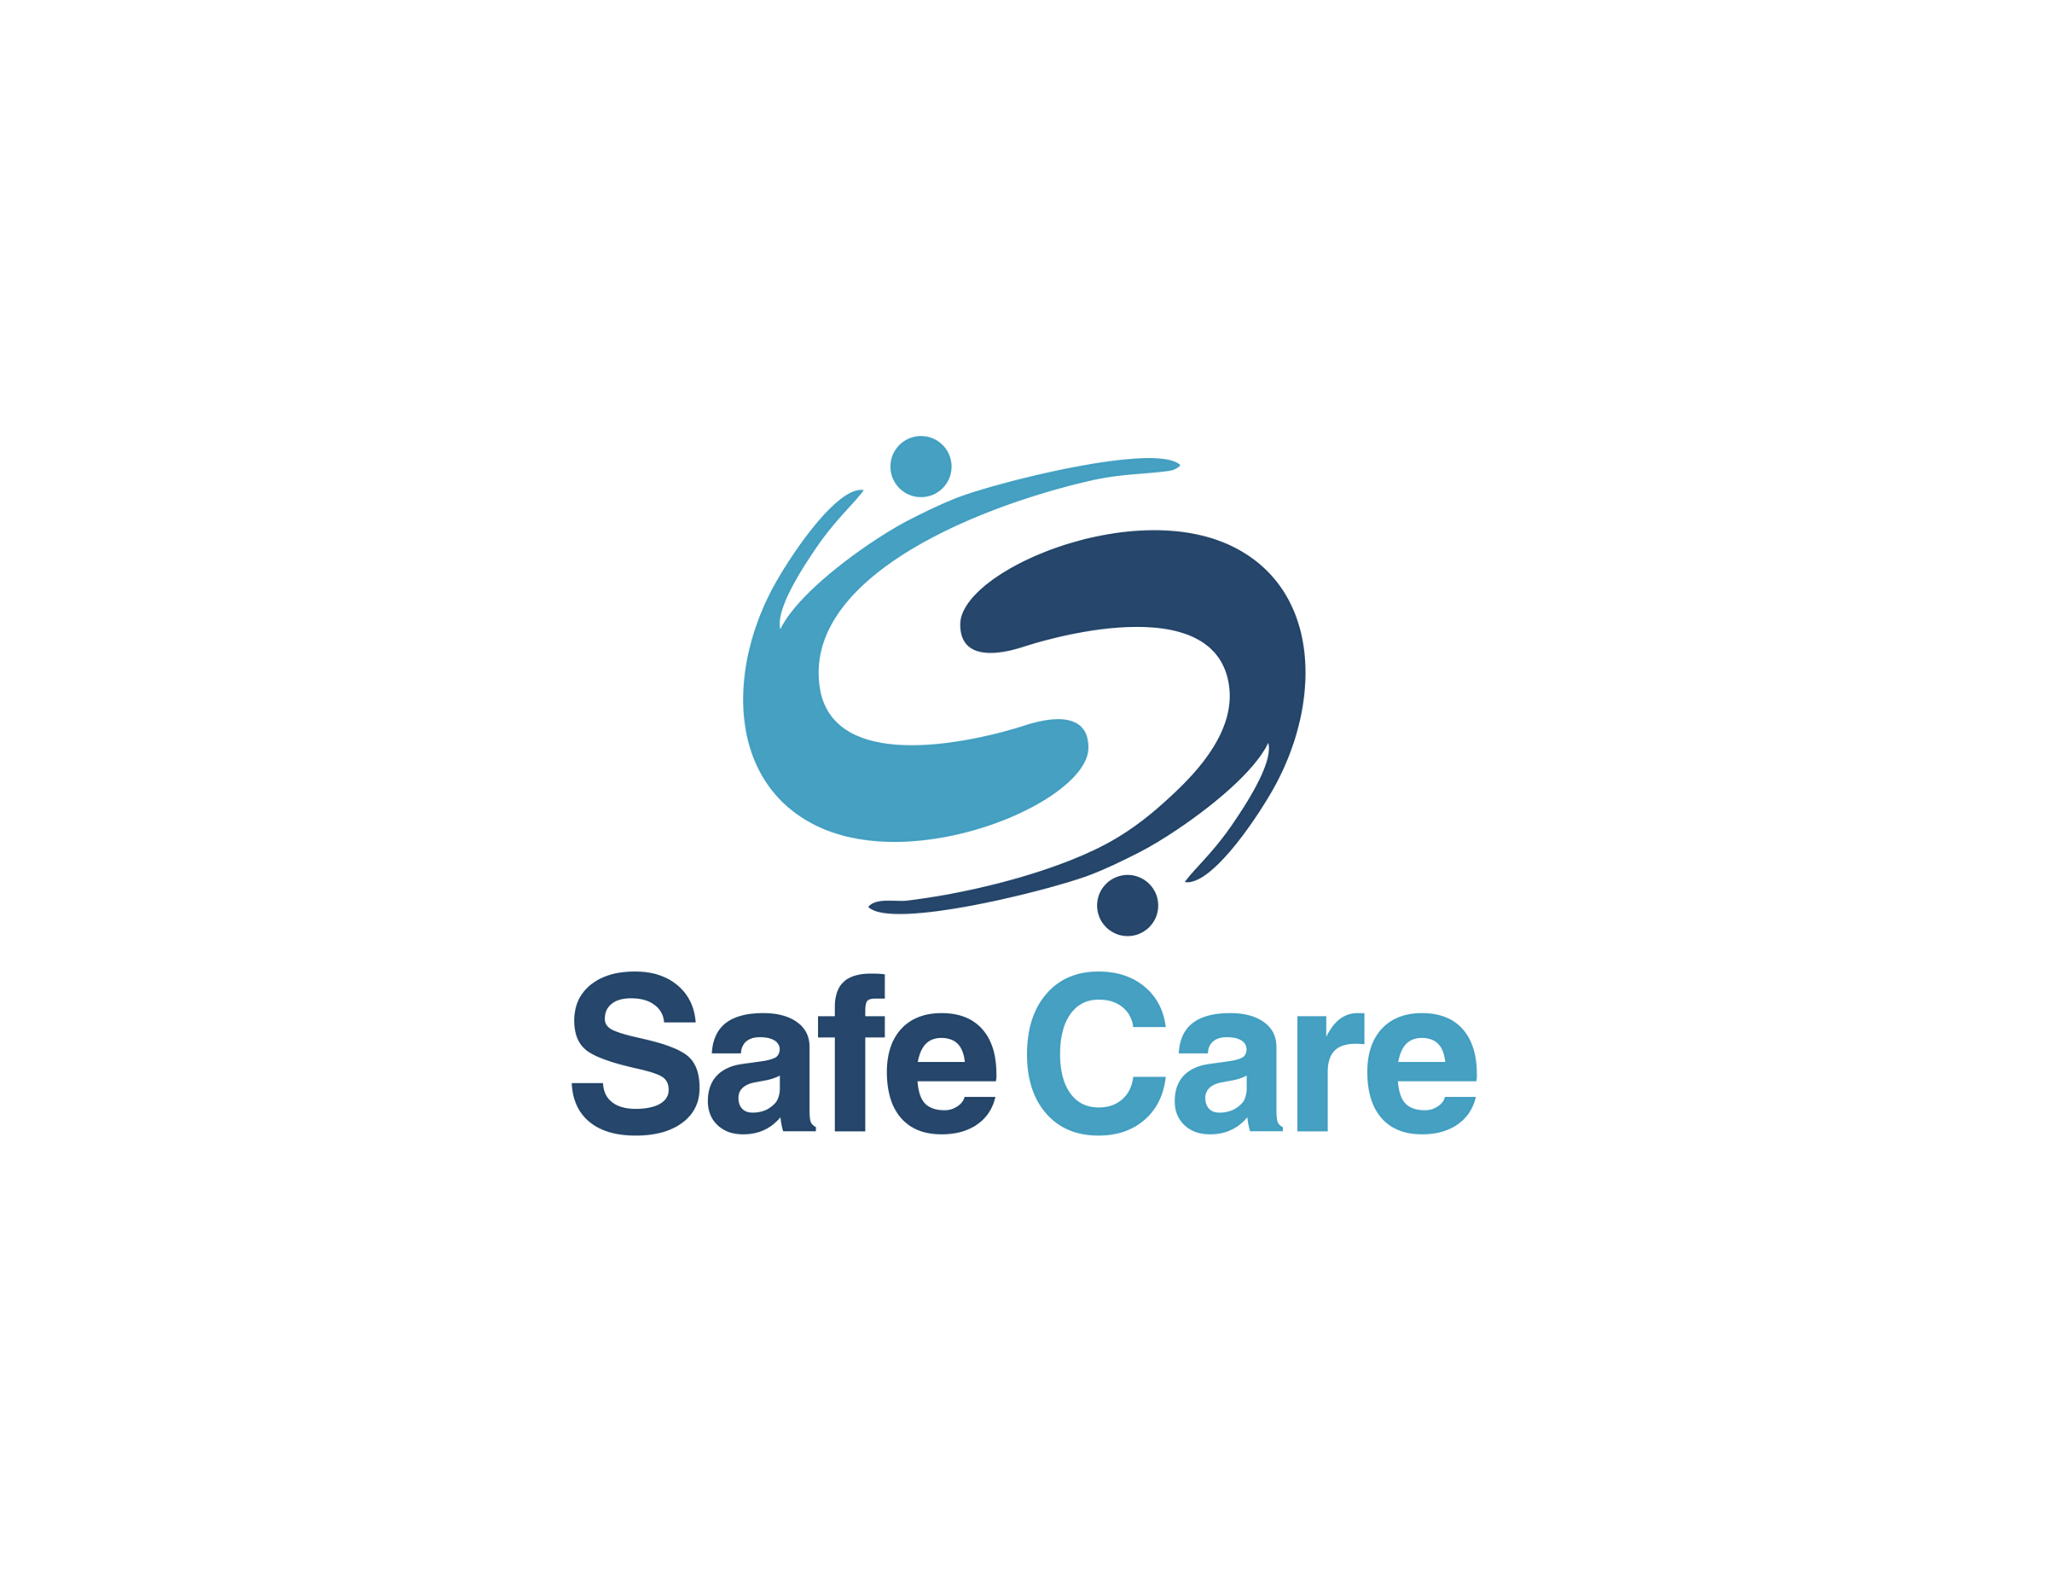 Safe Care Health School is a medical vocational training